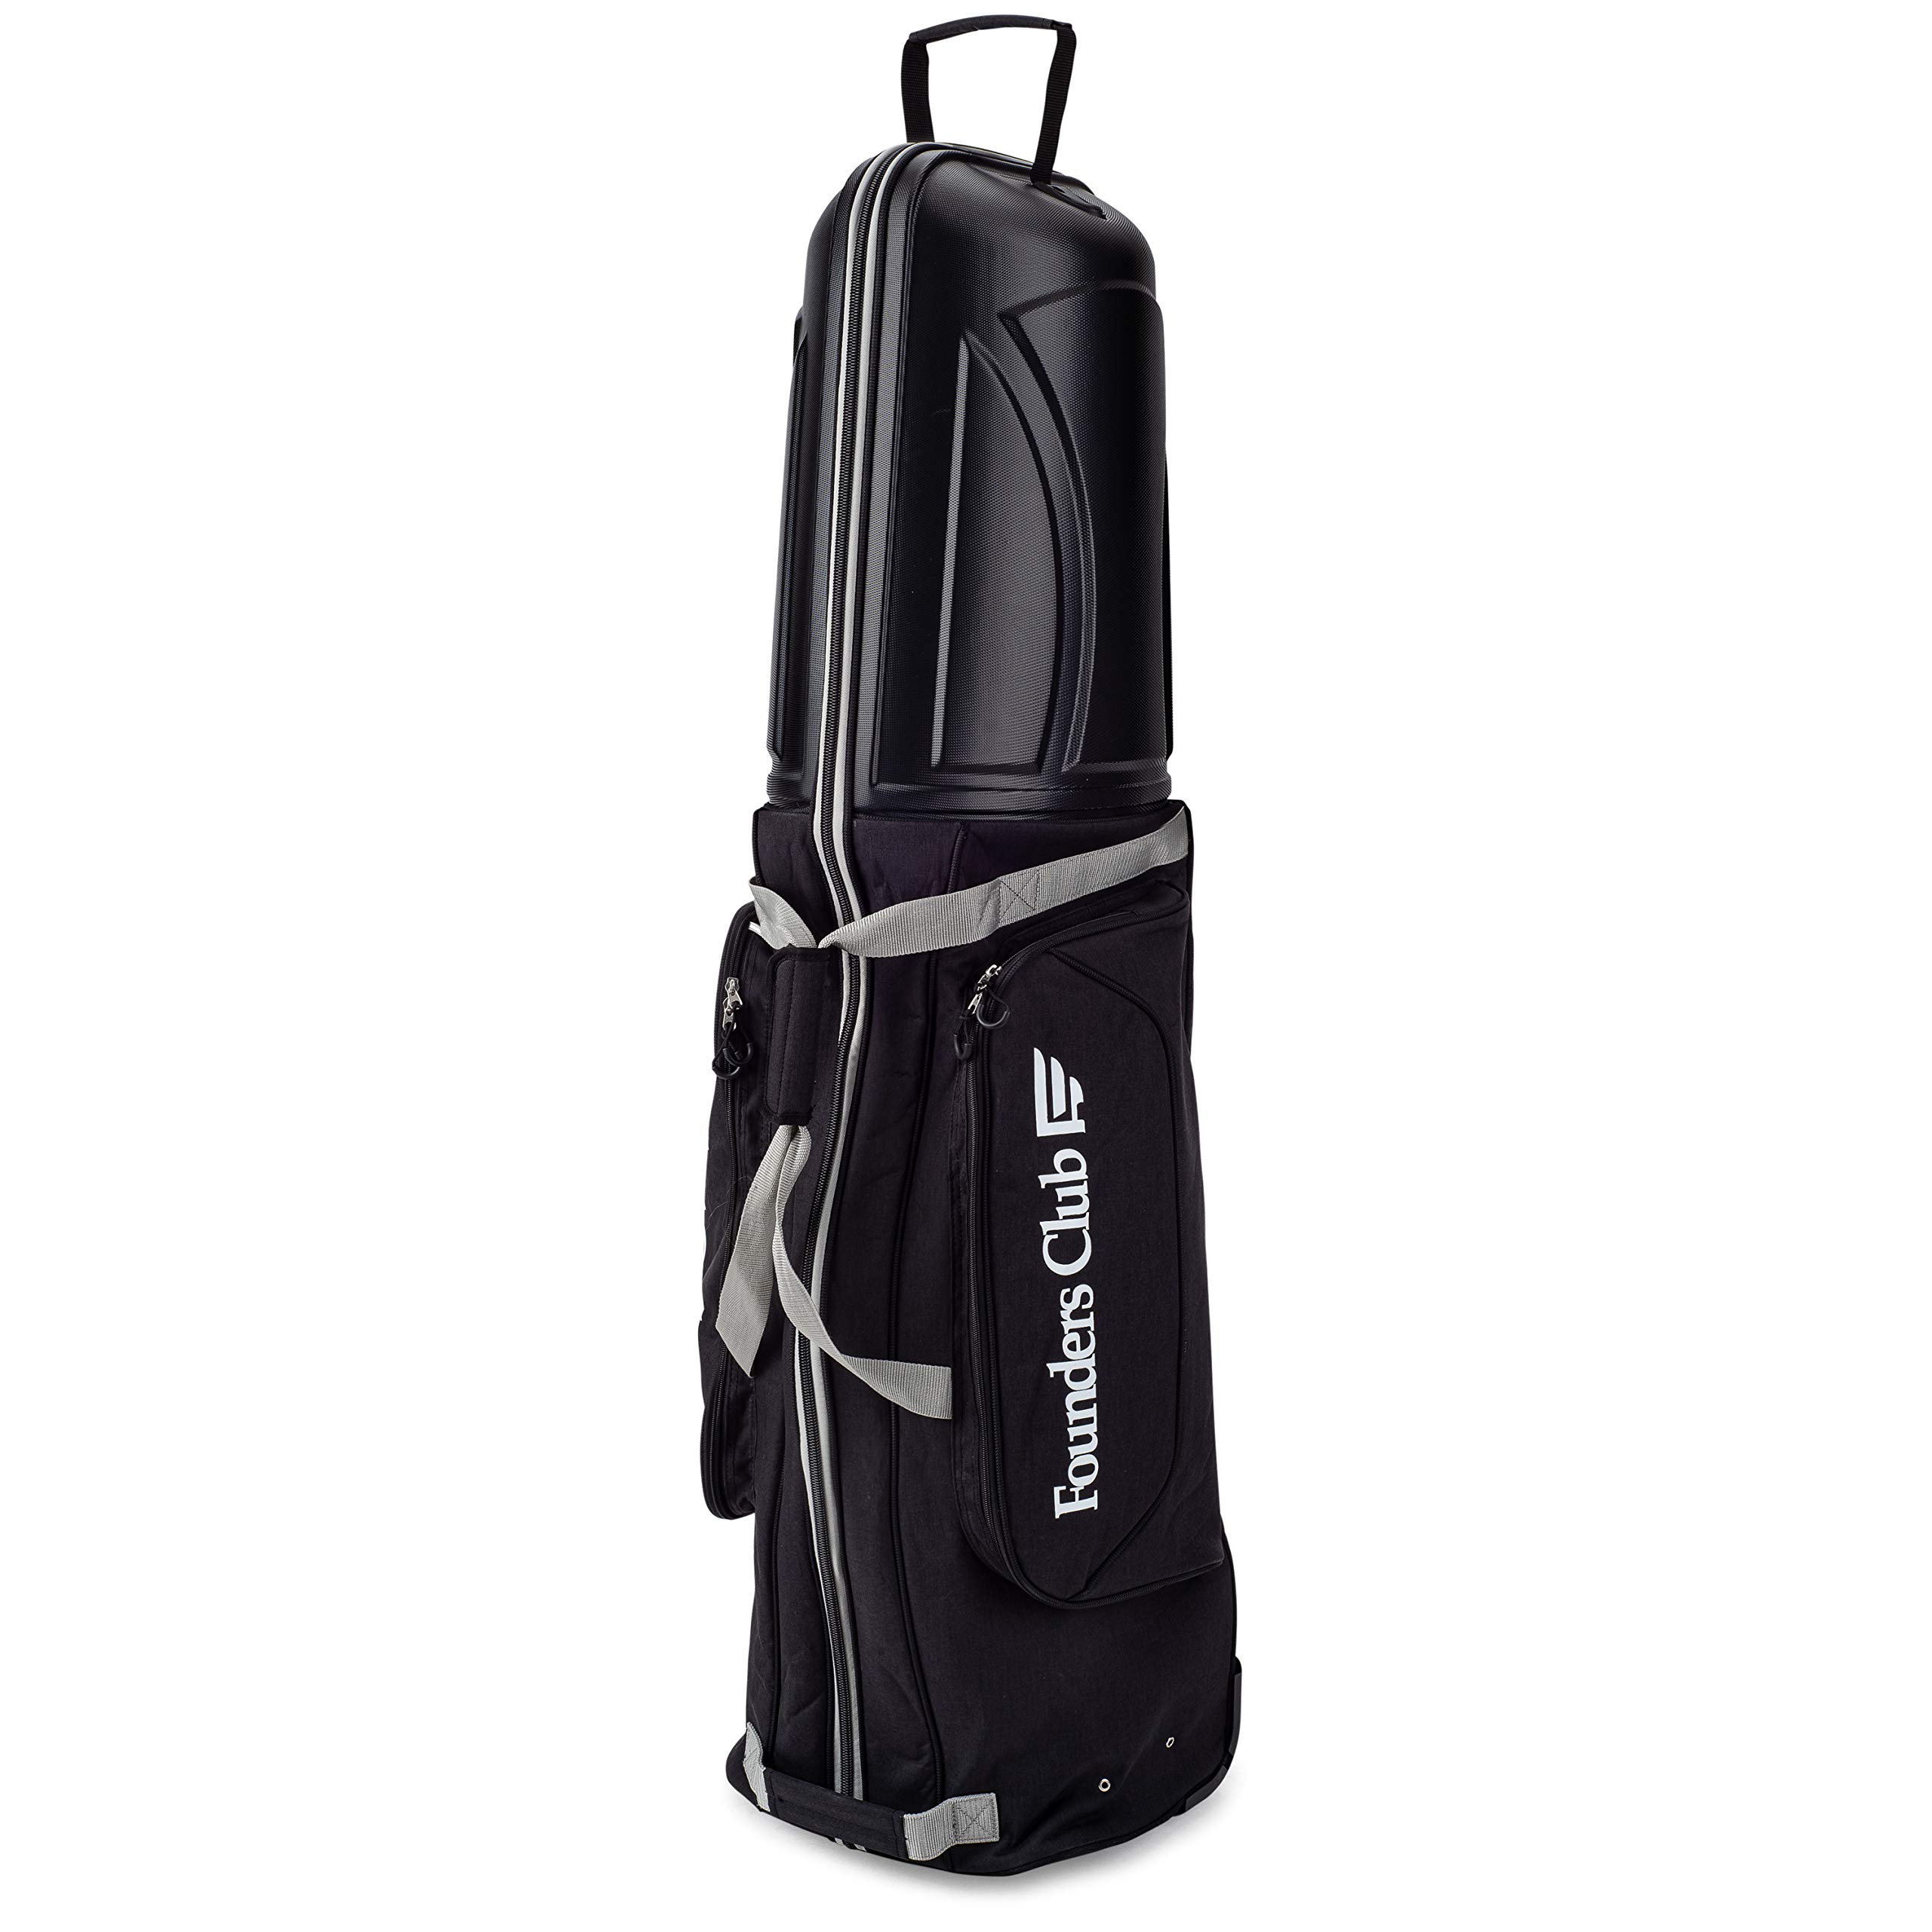 Founders Club Golf Travel Cover Luggage for Golf Clubs with ABS Hard Shell Top Travel Bag (Black) by Founders Club